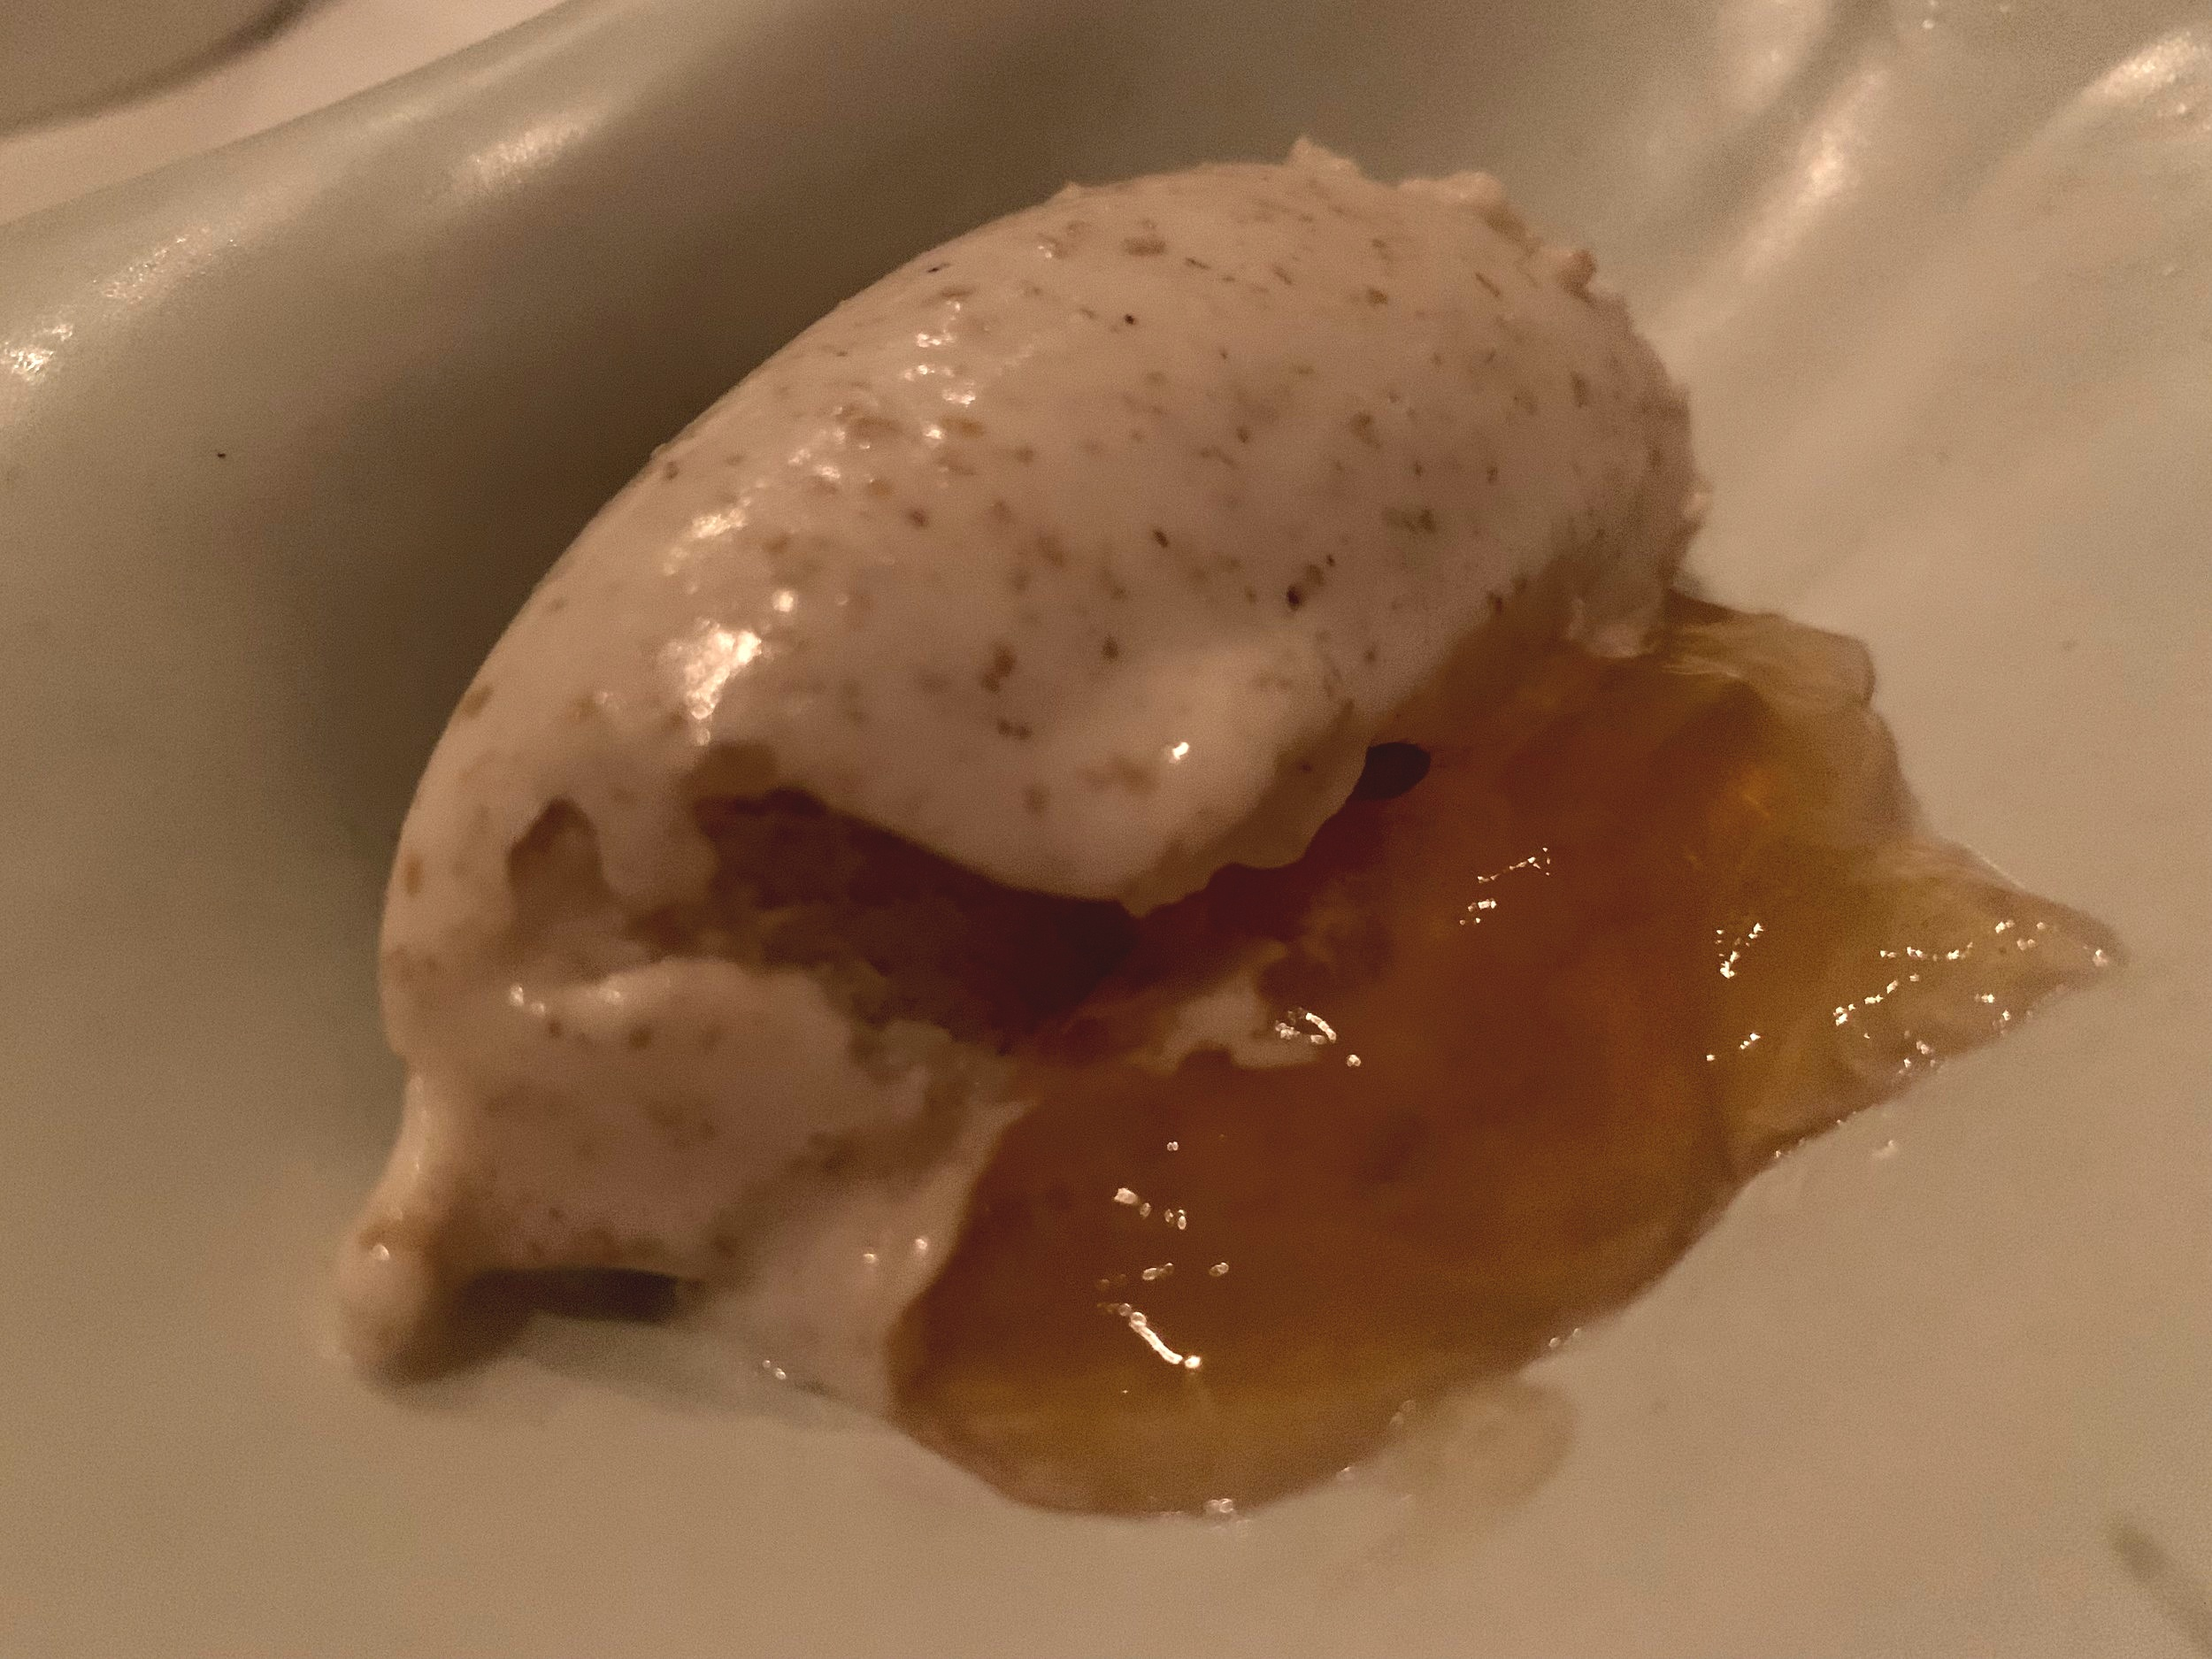 The Stages of Maple Sap Reduction - Dessert time. Maple ice cream with a fermented maple jelly. Yvonne loved this one, but I didn't care for it. To each their own.